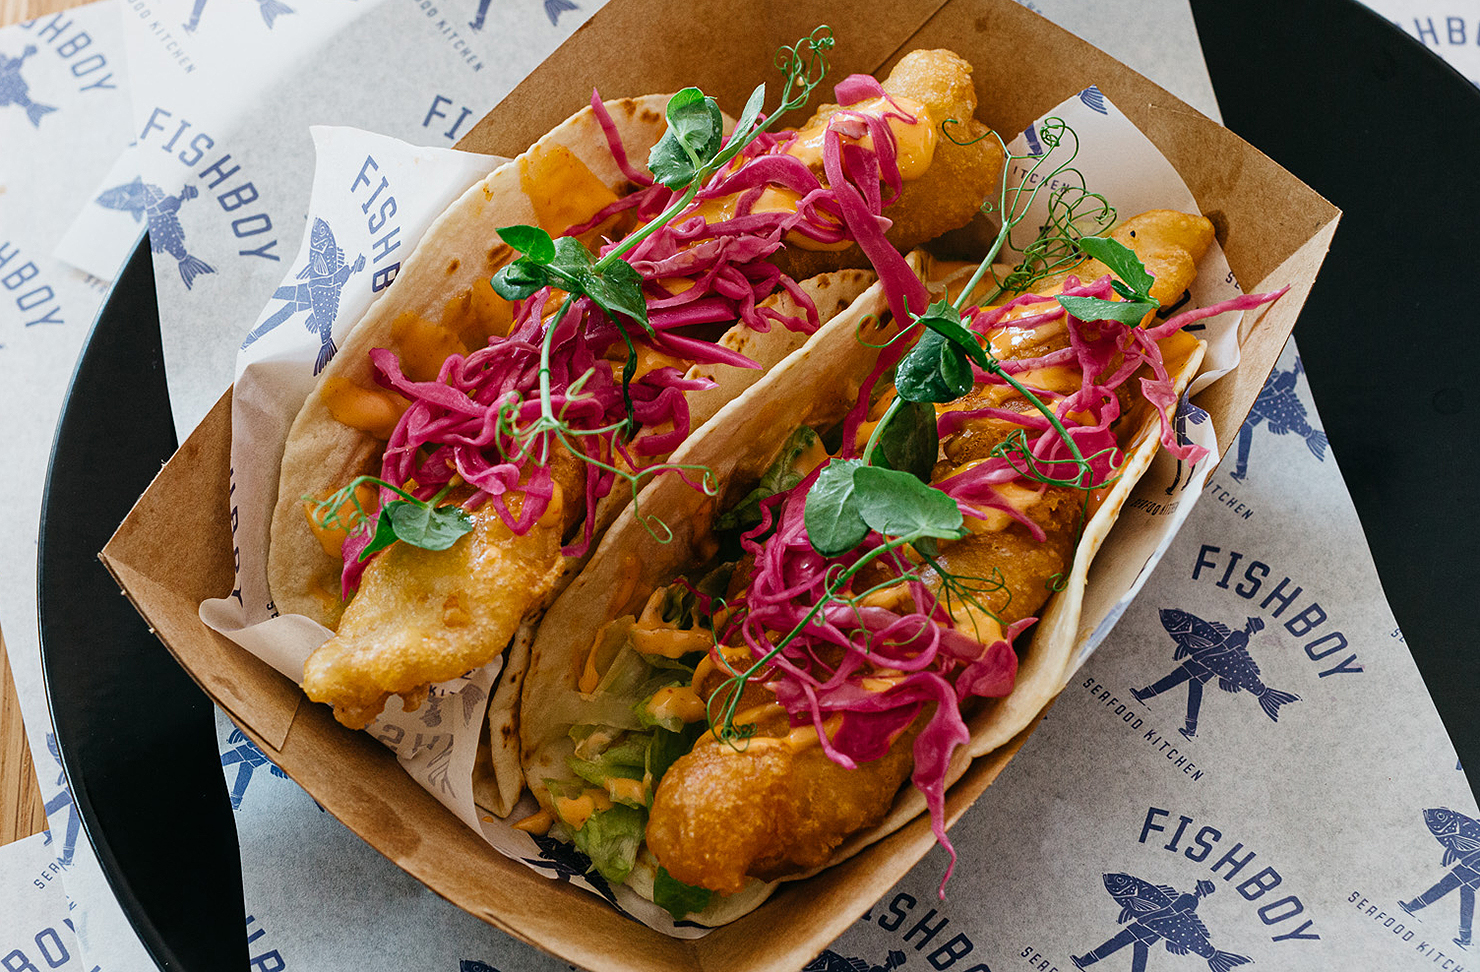 Fish tacos from Fishboy look delicious.